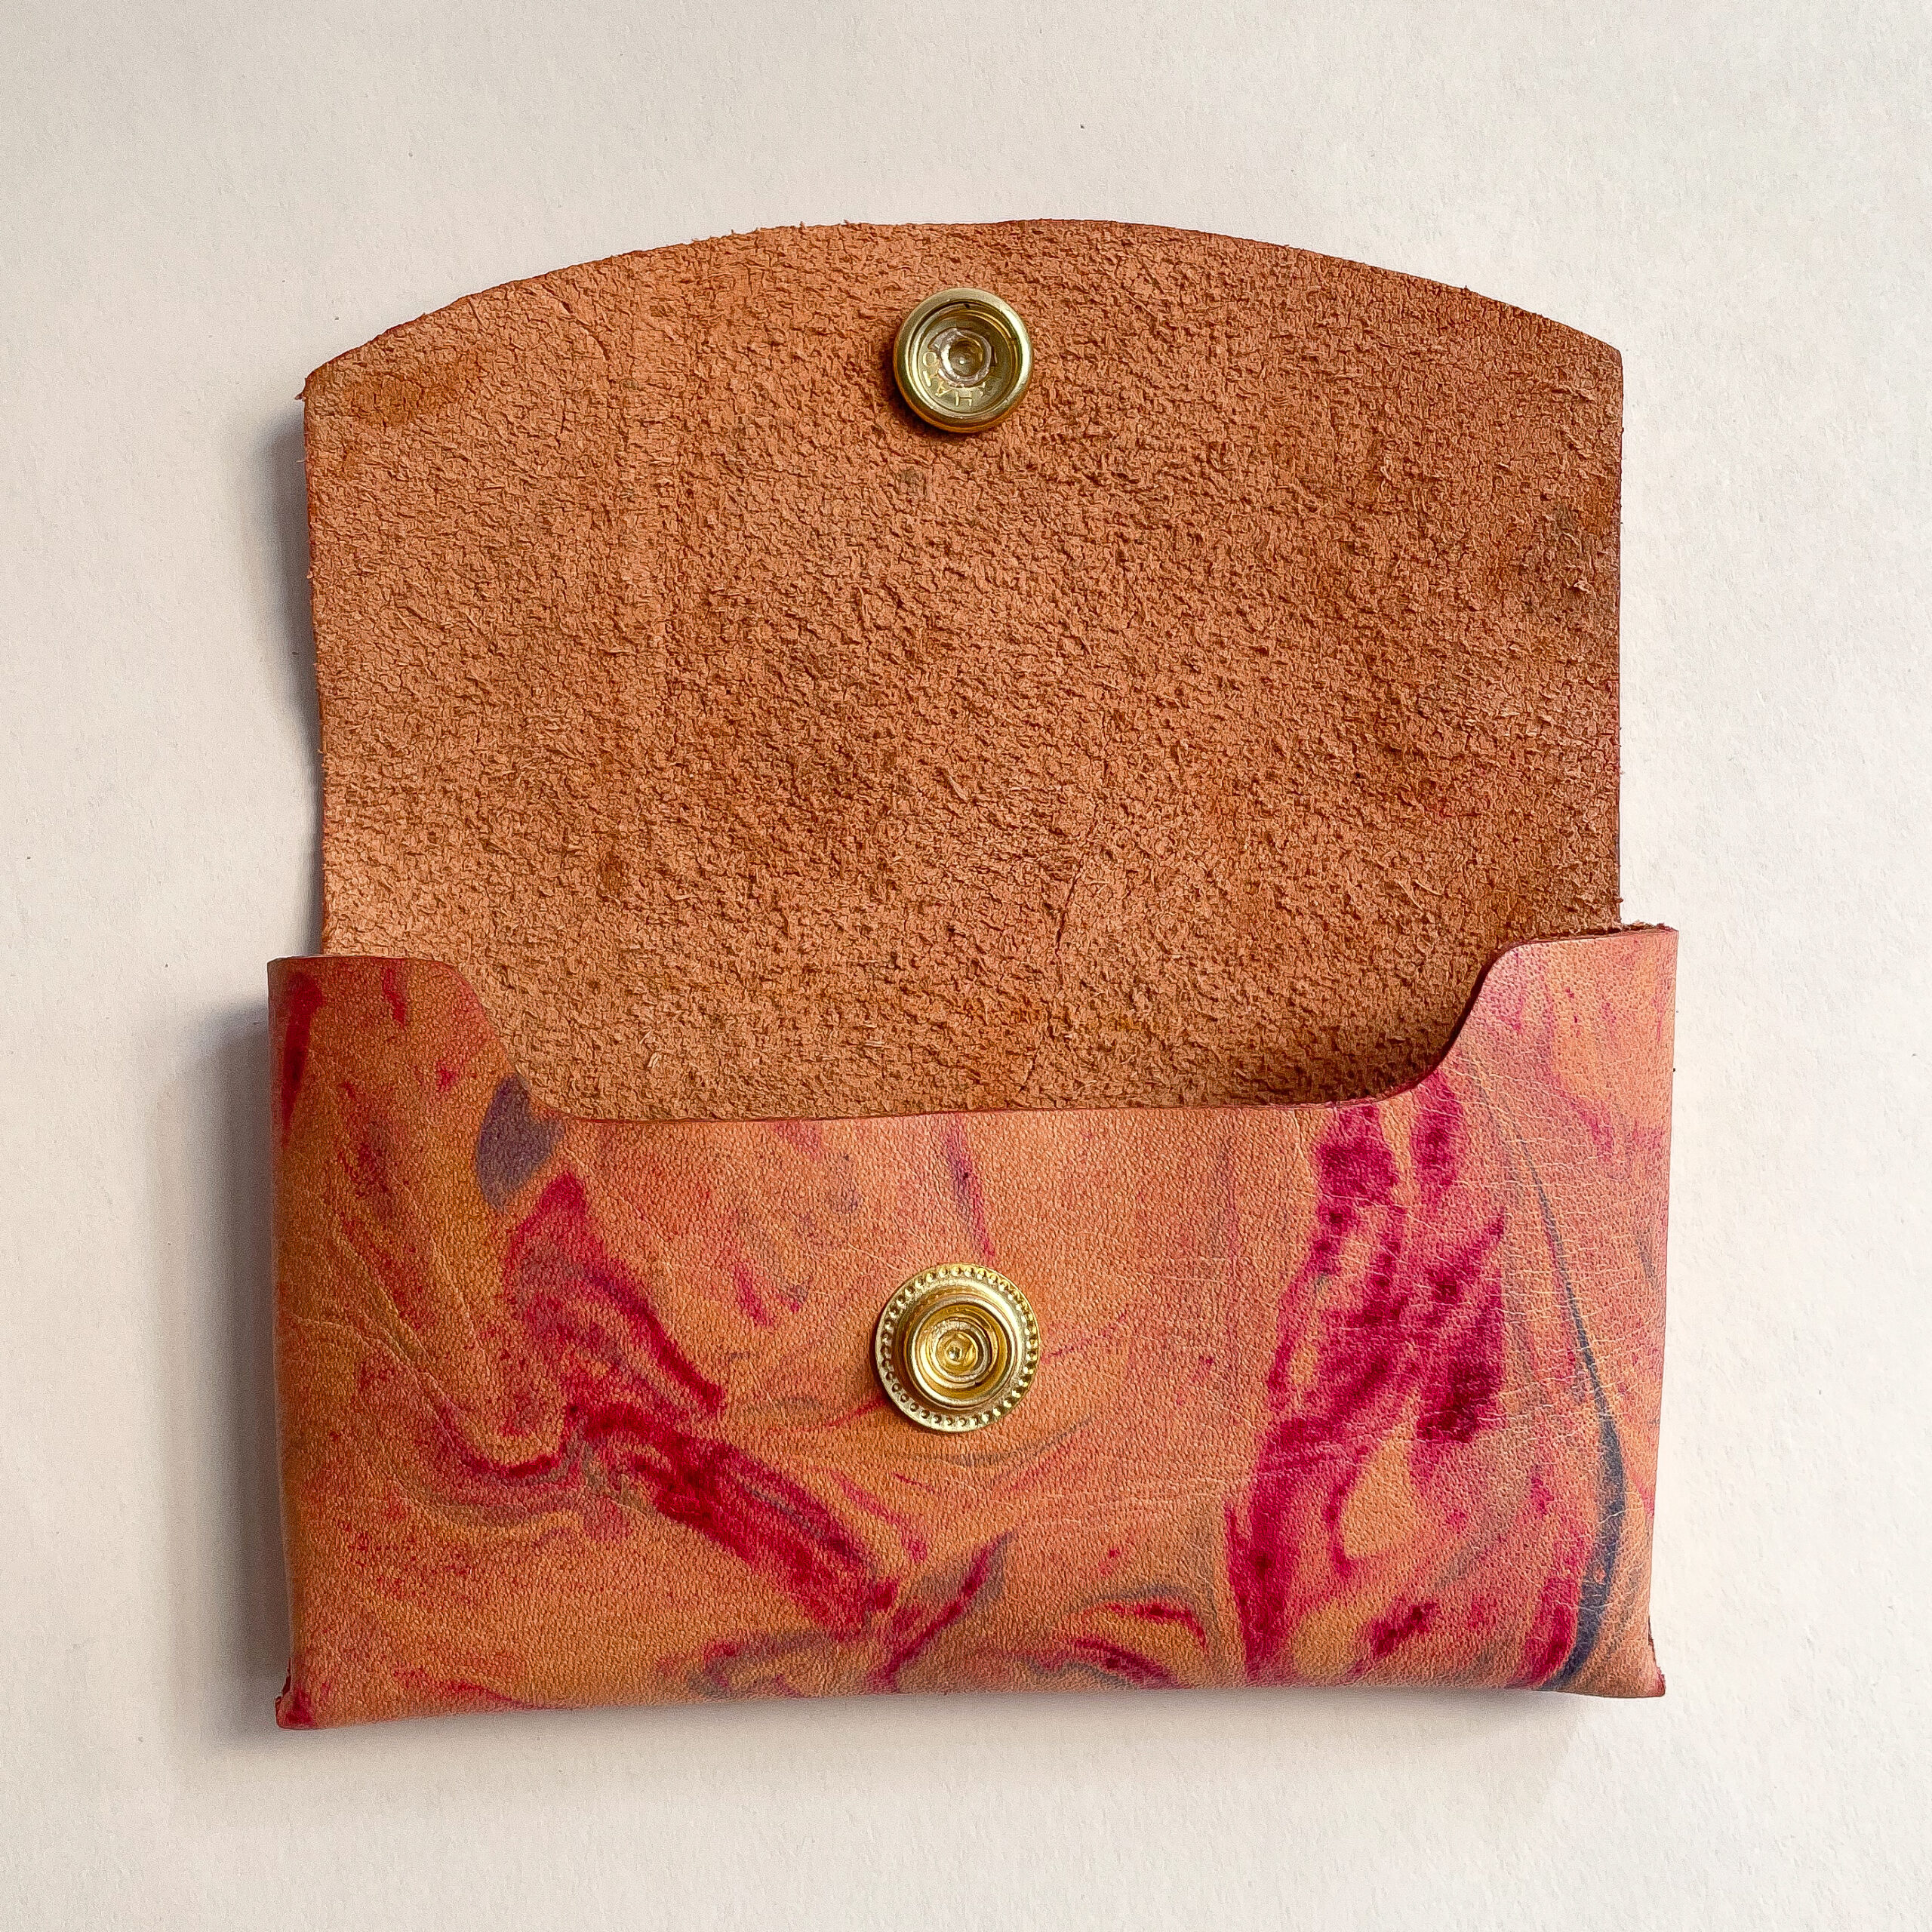 The Marbled Leather Card Case open with the inside visible